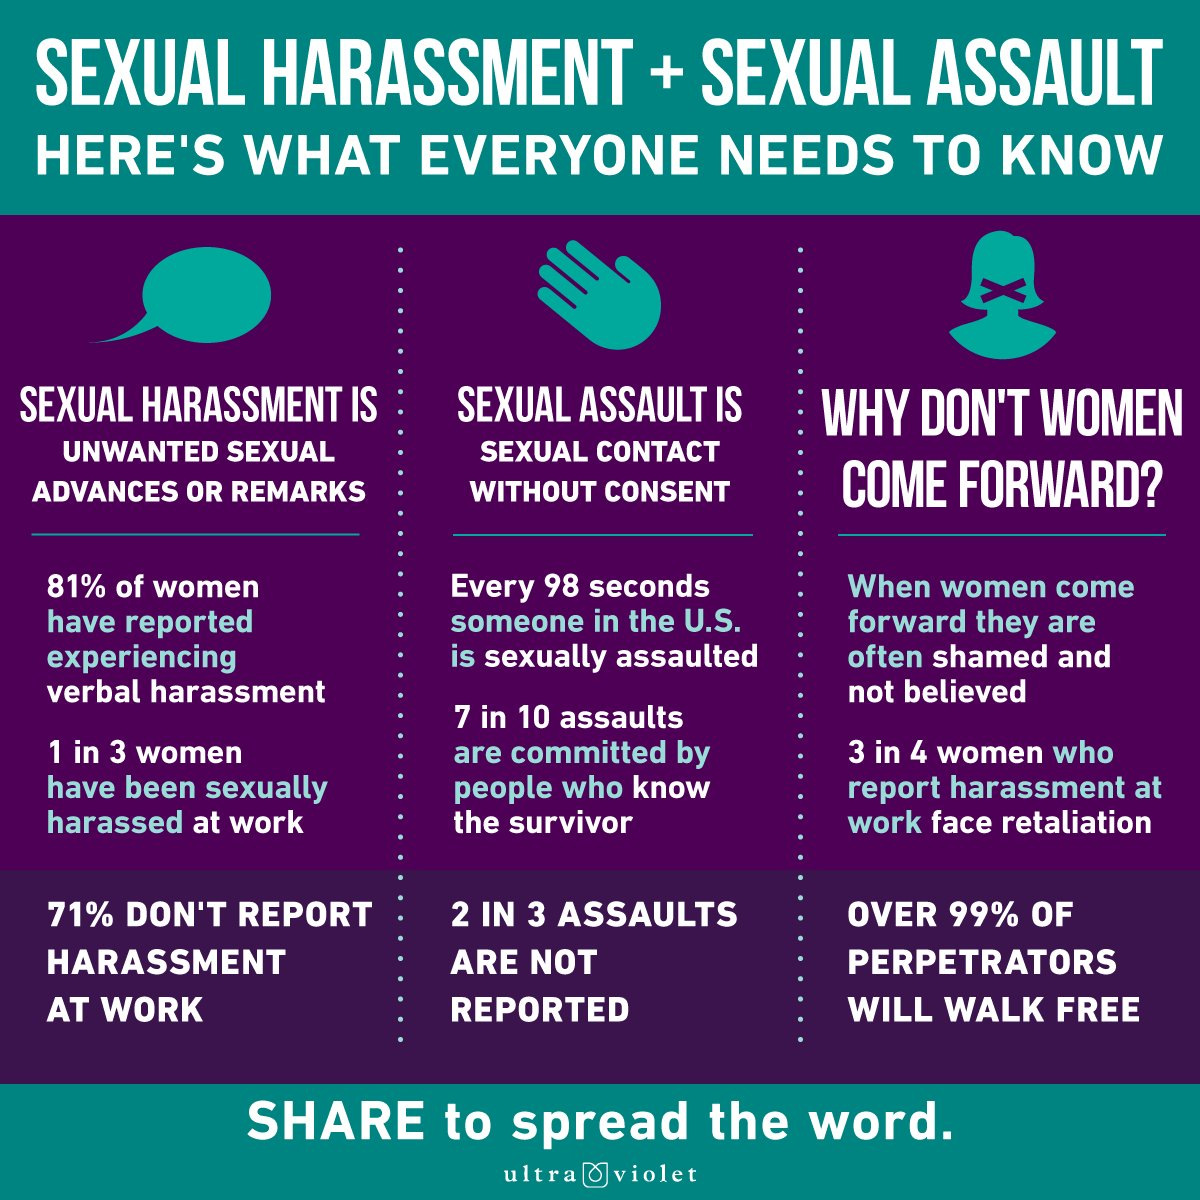 RT @UltraViolet: Sexual harassment is an epidemic. Sexual assault is an epidemic. #BelieveSurvivors #MeToo https://t.co/qLOSR4FkQn